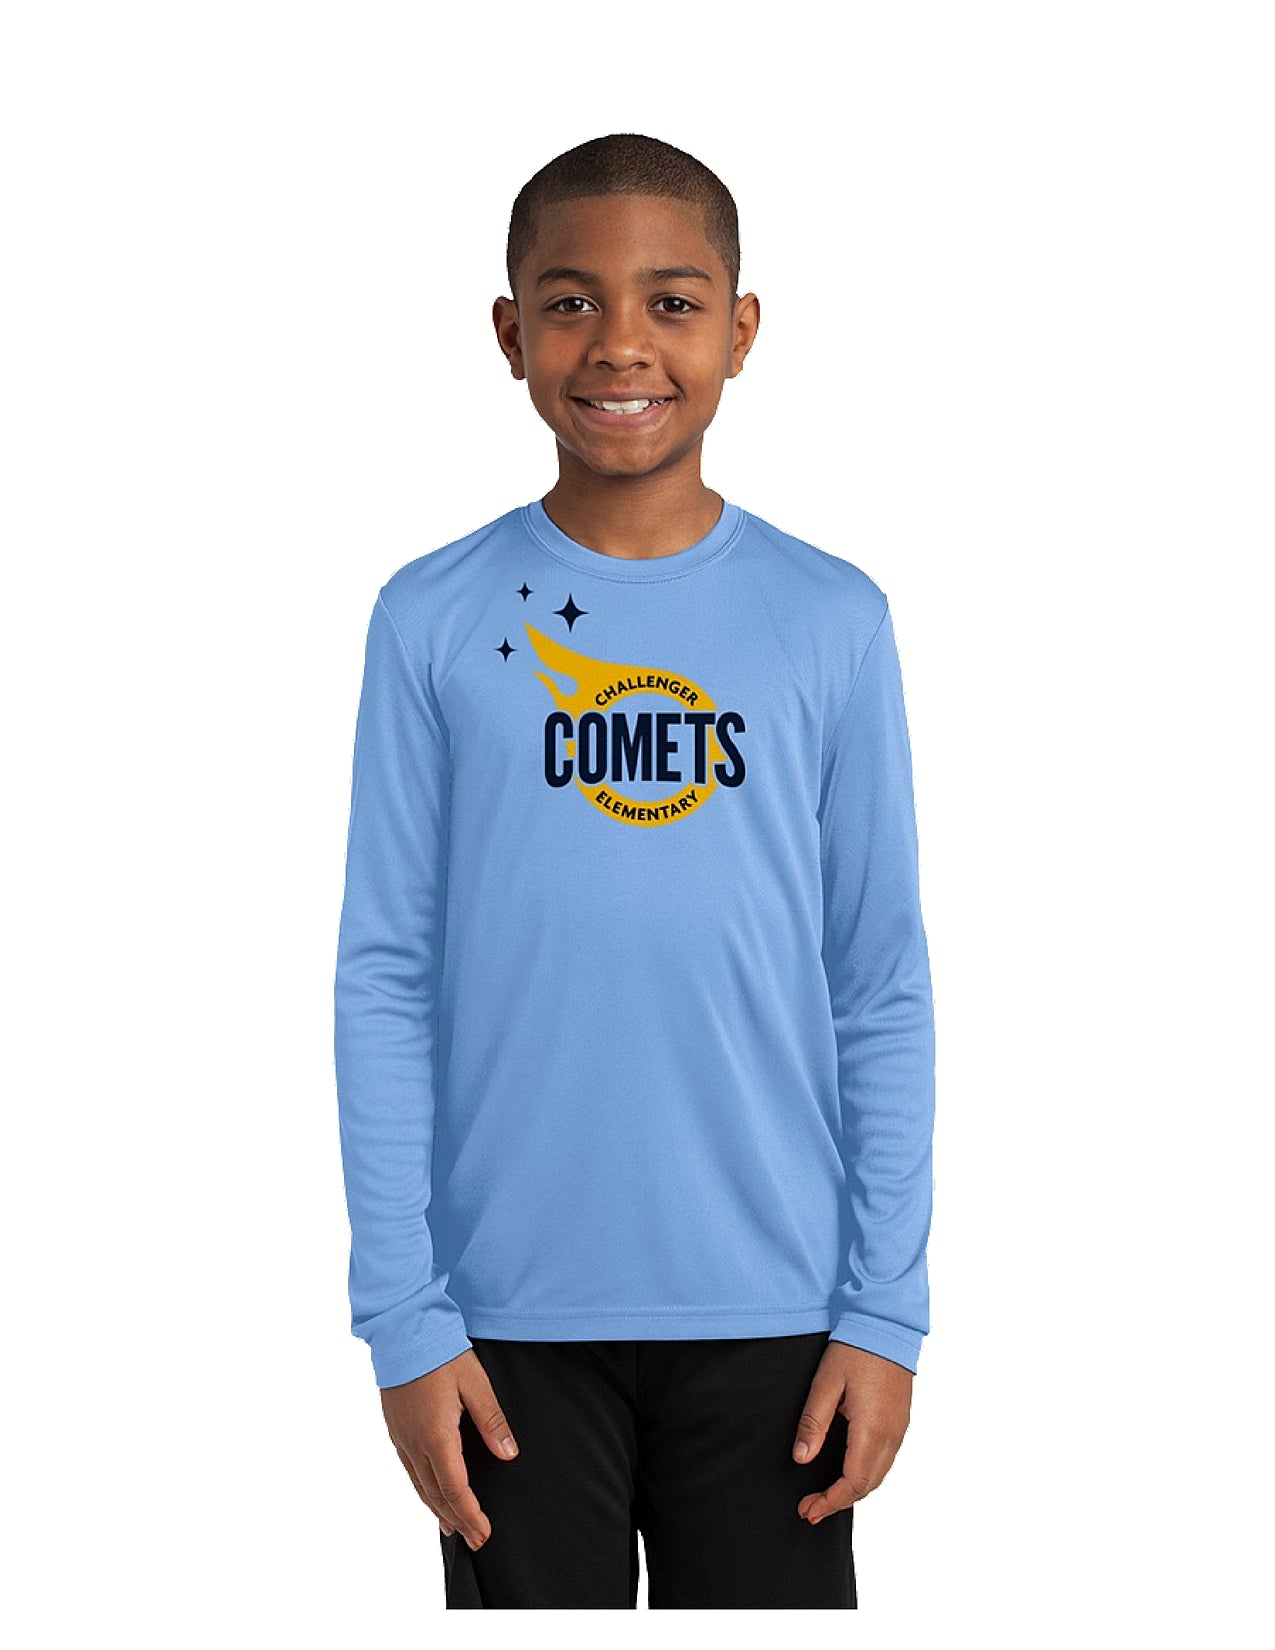 Port & Company ® Youth Long Sleeve Performance Tee